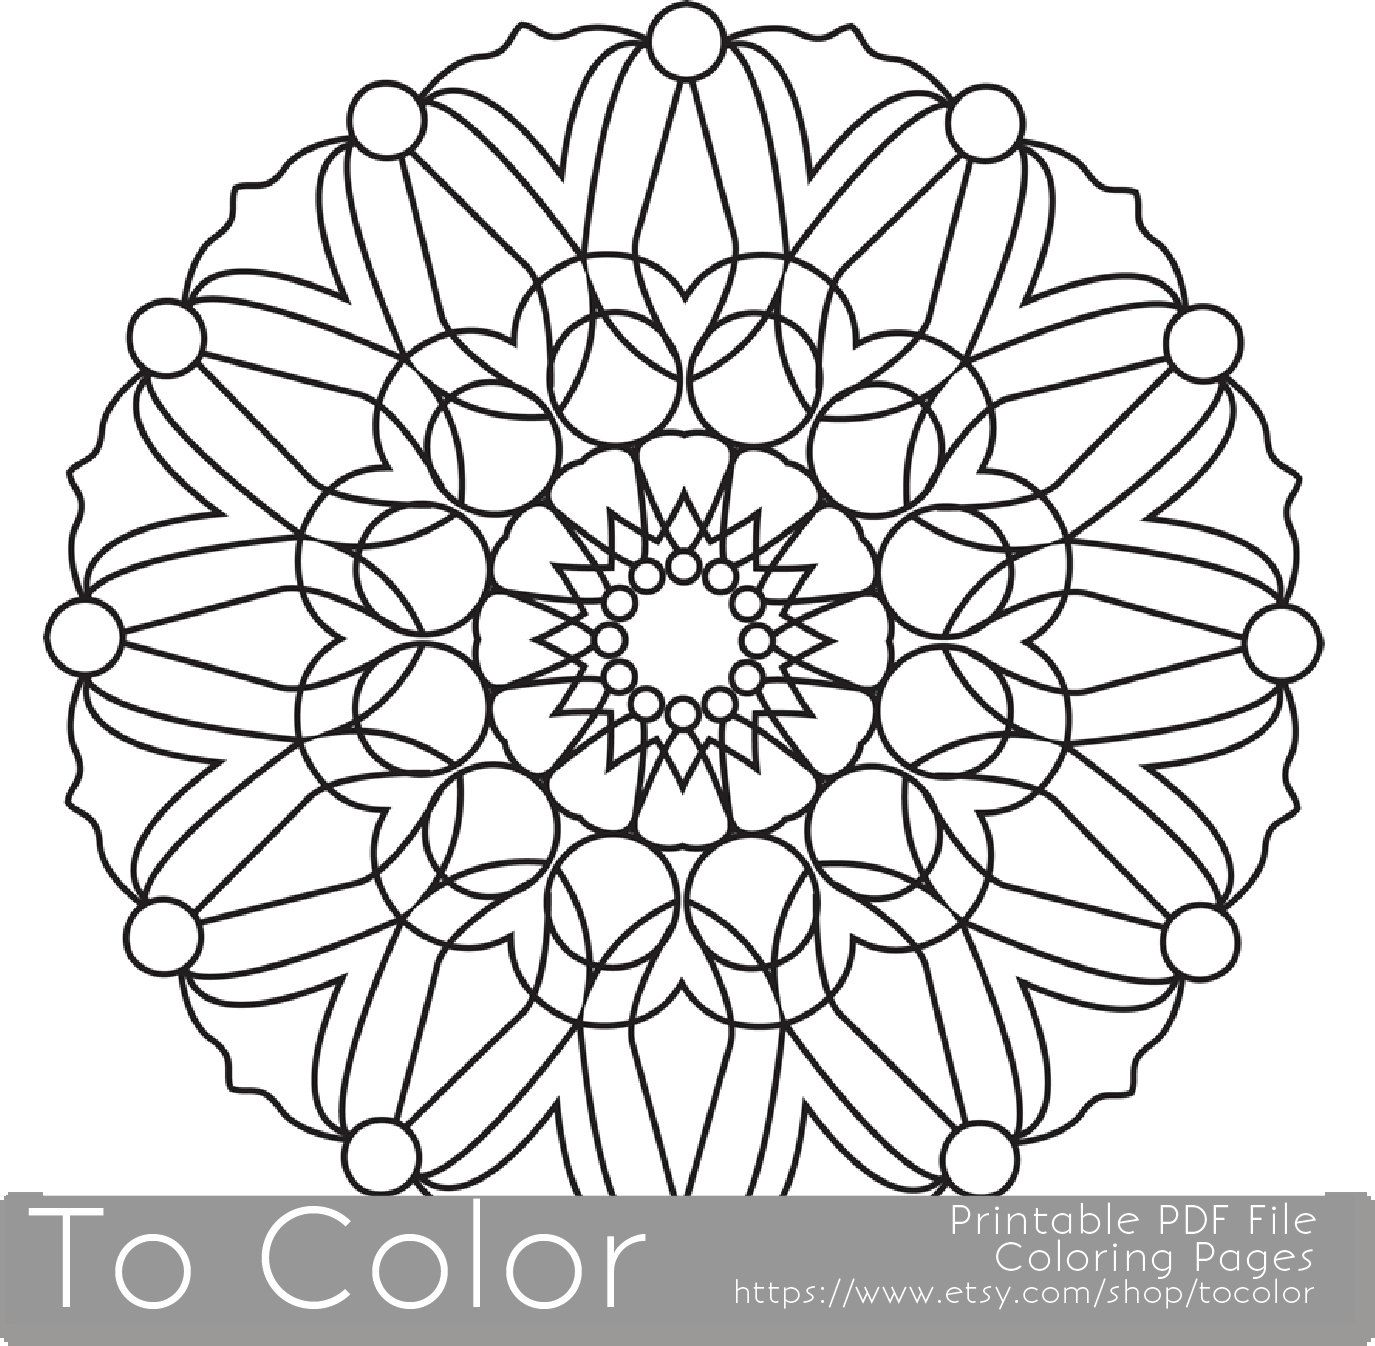 Grown Up Coloring Pages Pdf : Popular items for grown up coloring on etsy home